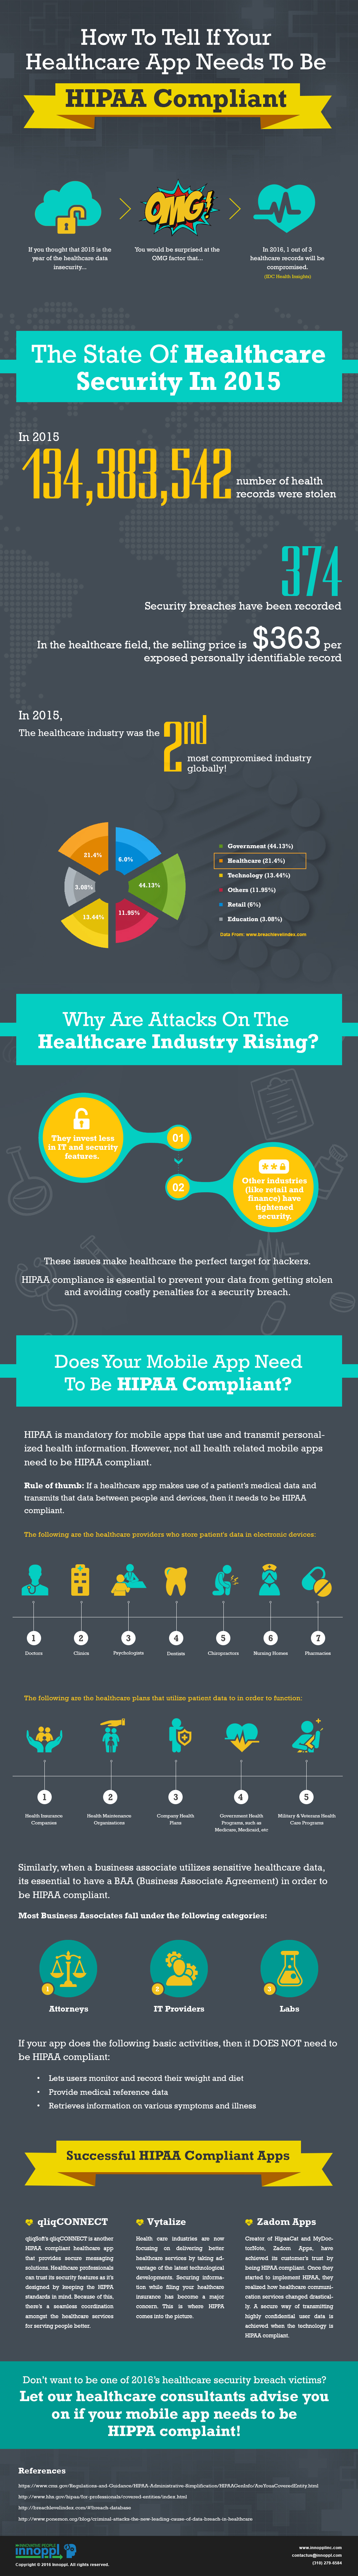 Healthcare app needs to be hipaa compliant [Infographic]